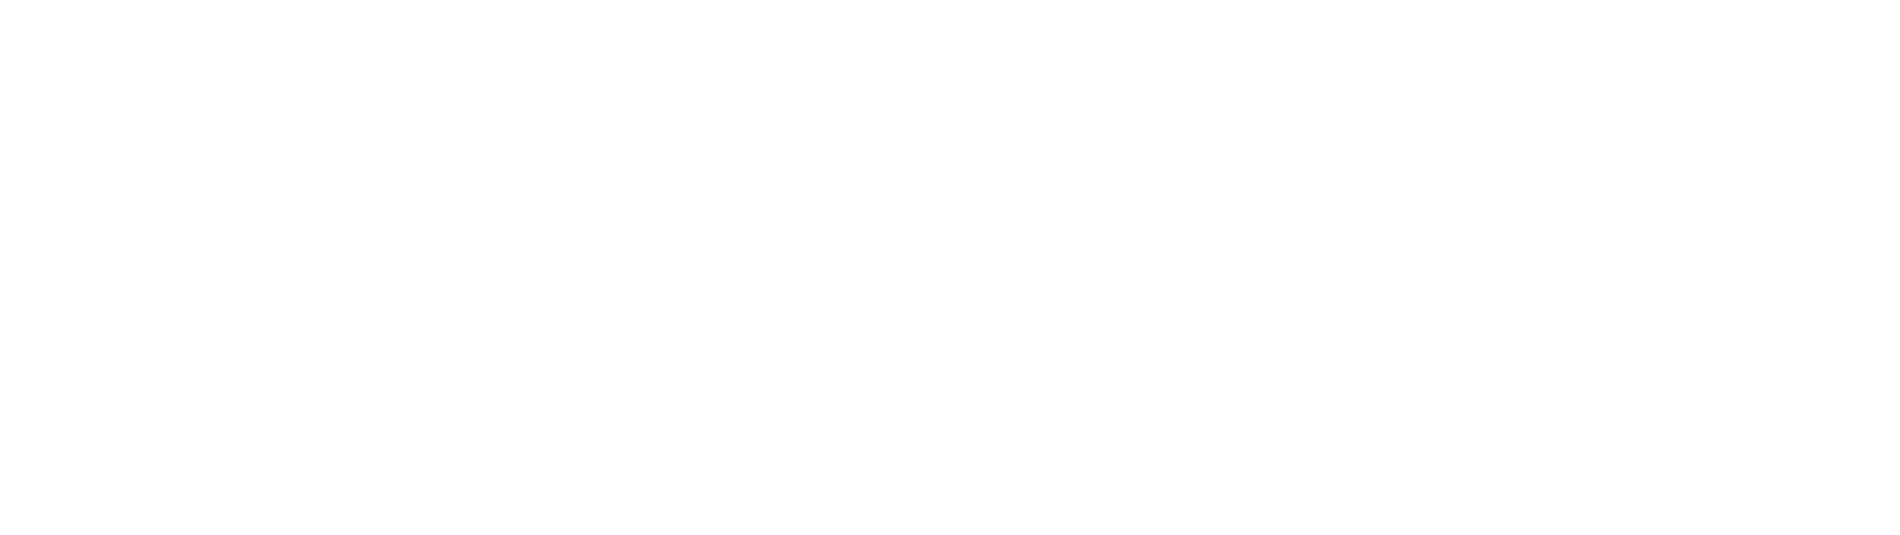 2017_superfitgames_logo_white.png